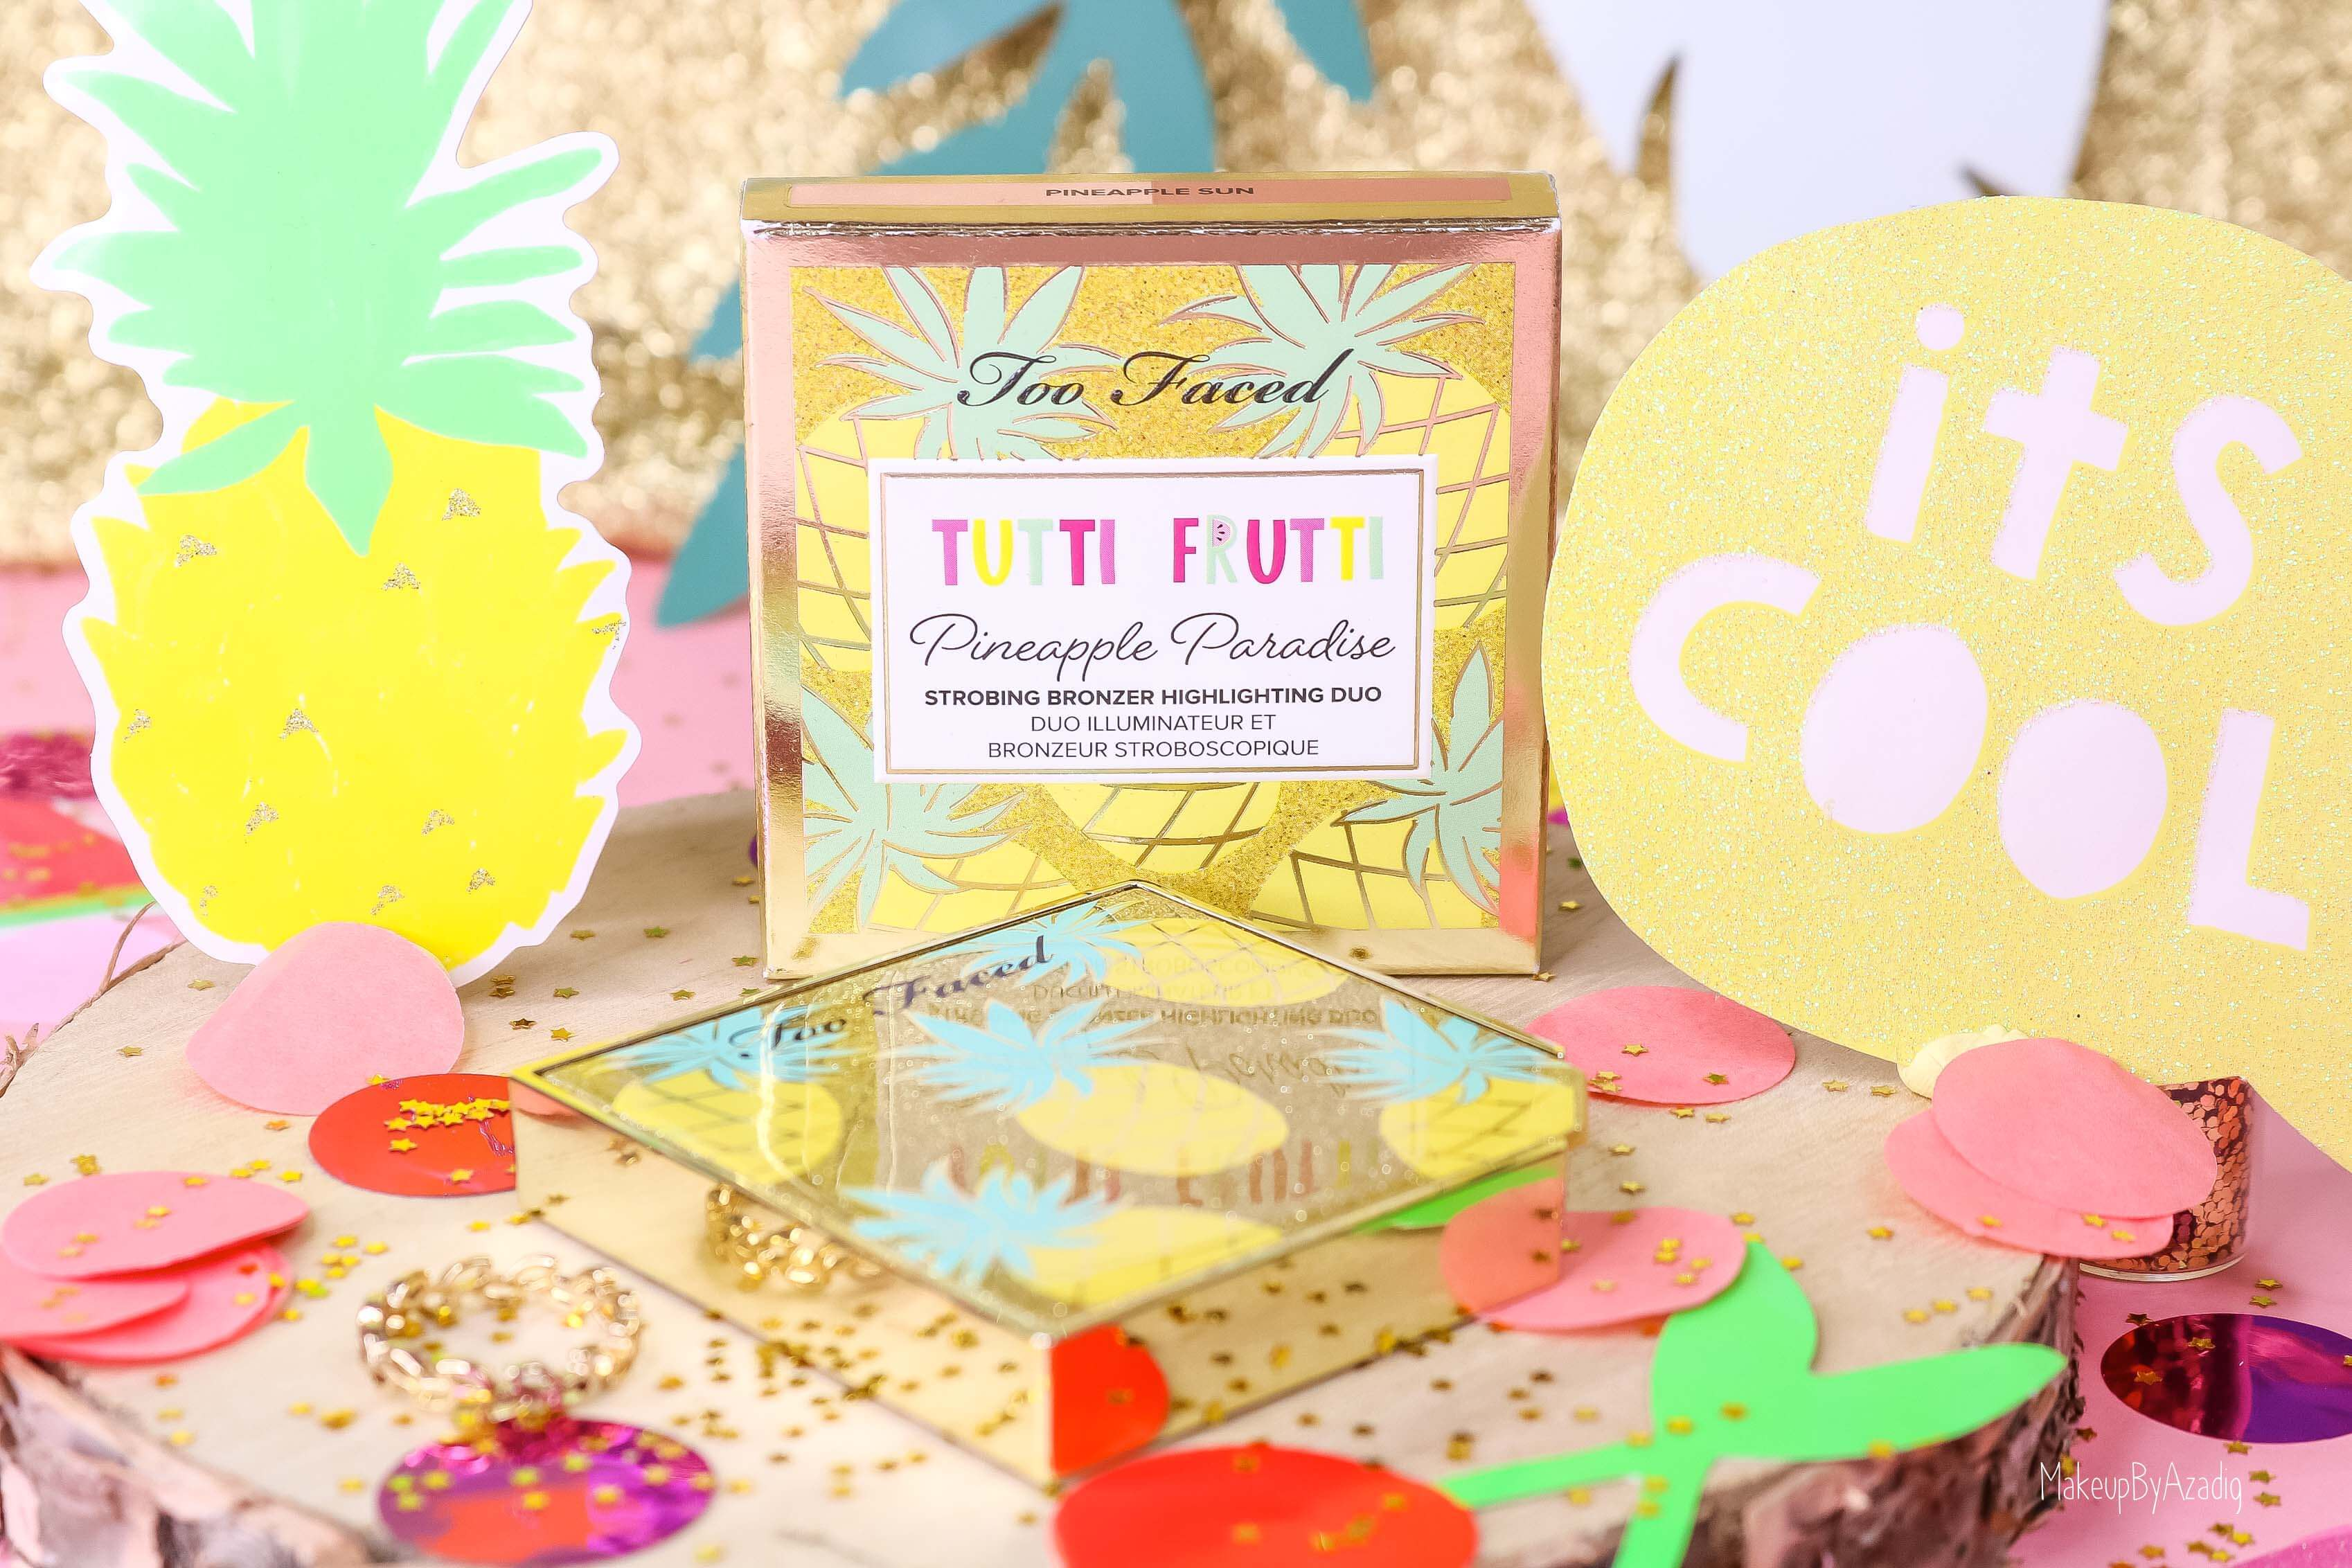 revue-collection-tutti-frutti-too-faced-bronzeur-highlighter-pineapple-paradise-sun-sephora-france-makeupbyazadig-swatch-avis-prix-ananas-cool